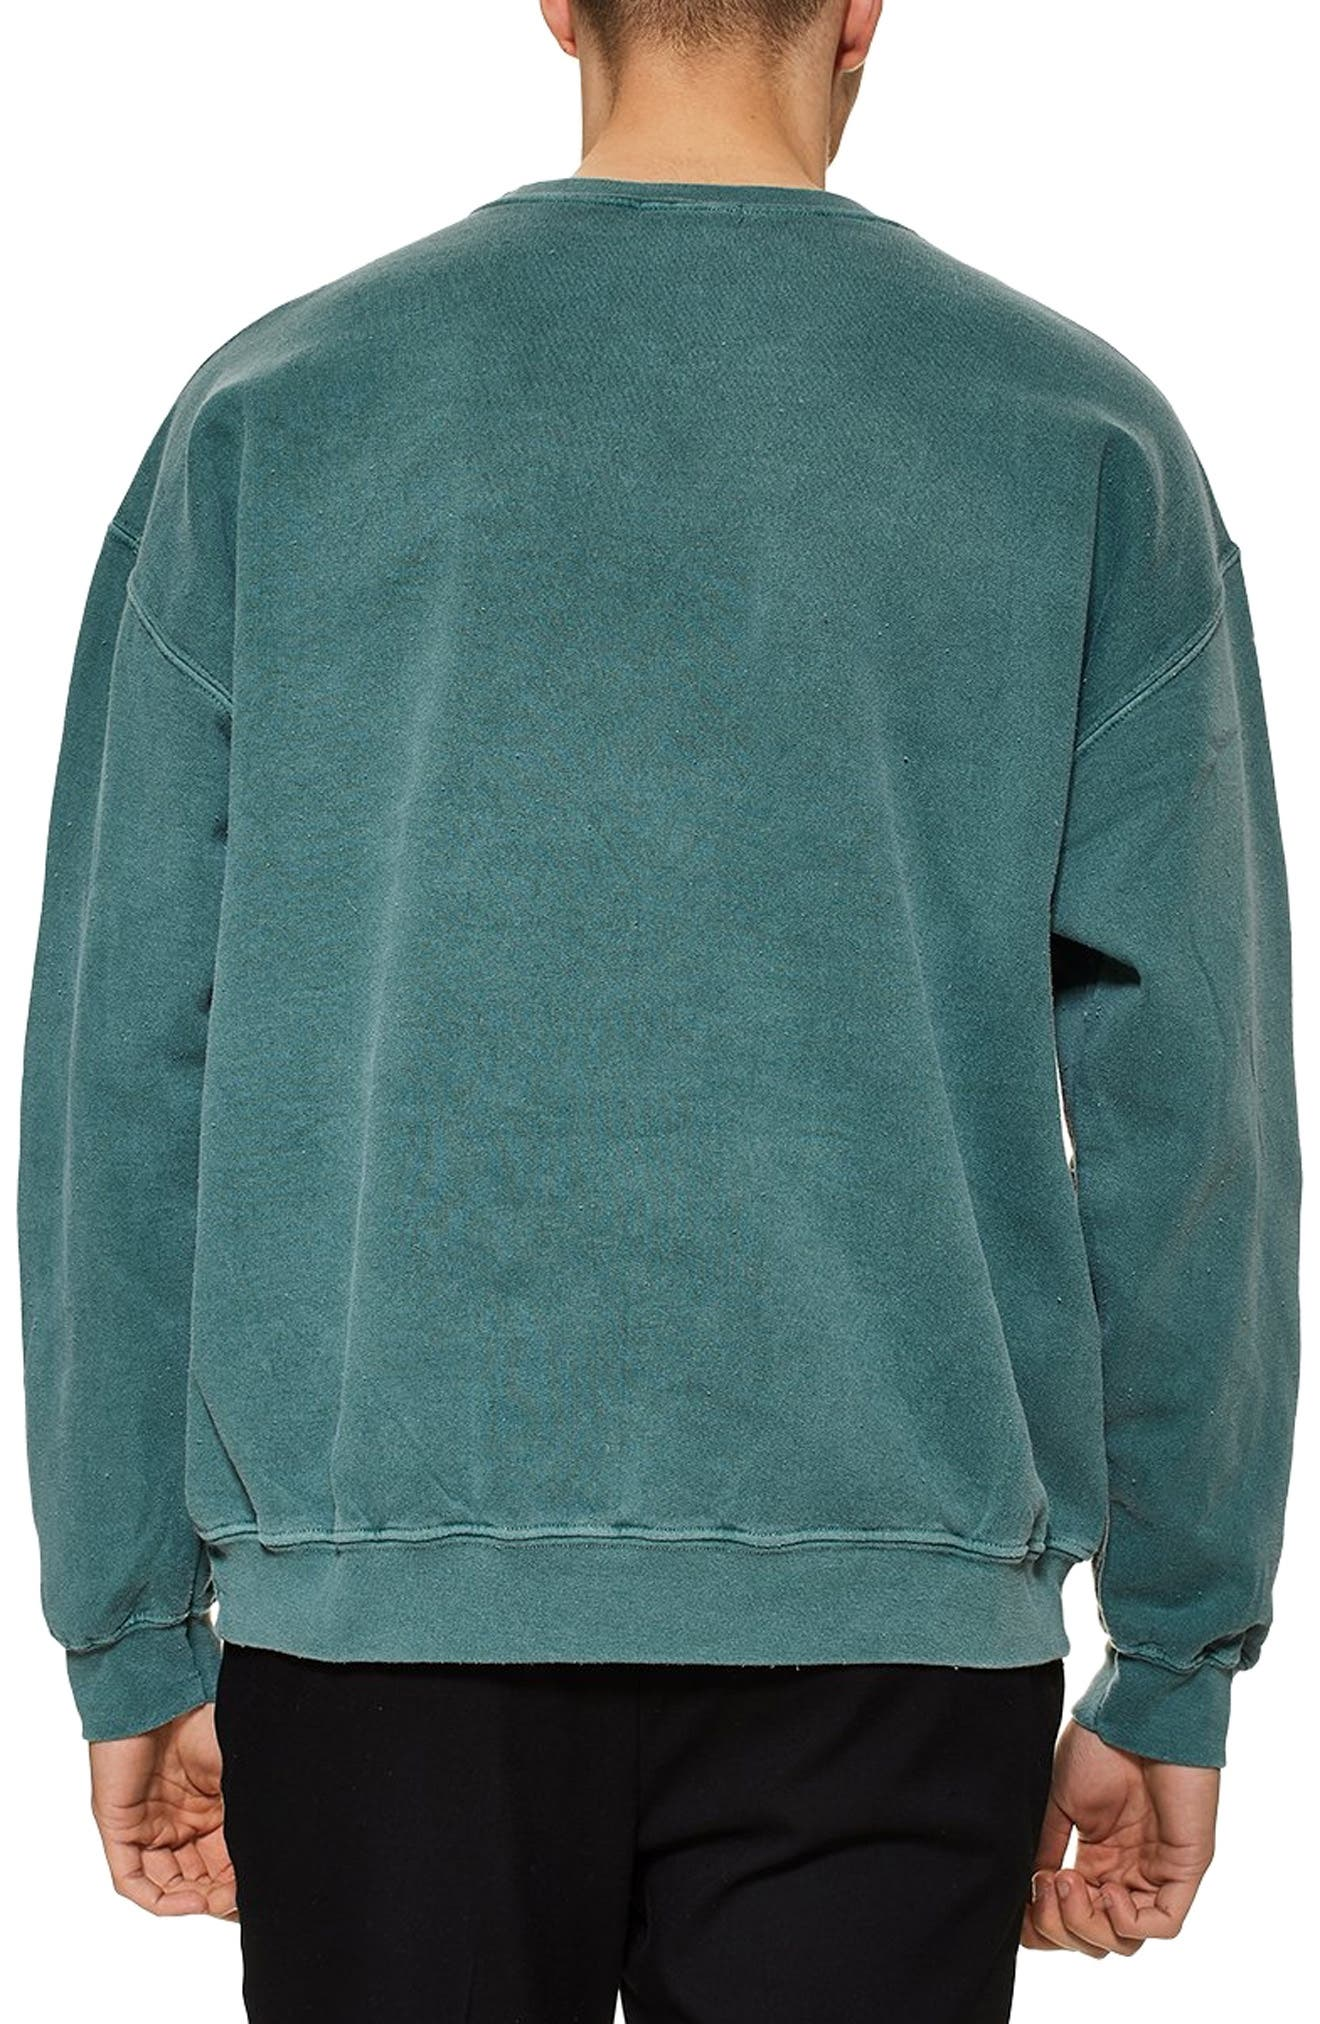 TOPMAN, Santa Monica Oversize Sweatshirt, Alternate thumbnail 2, color, GREEN